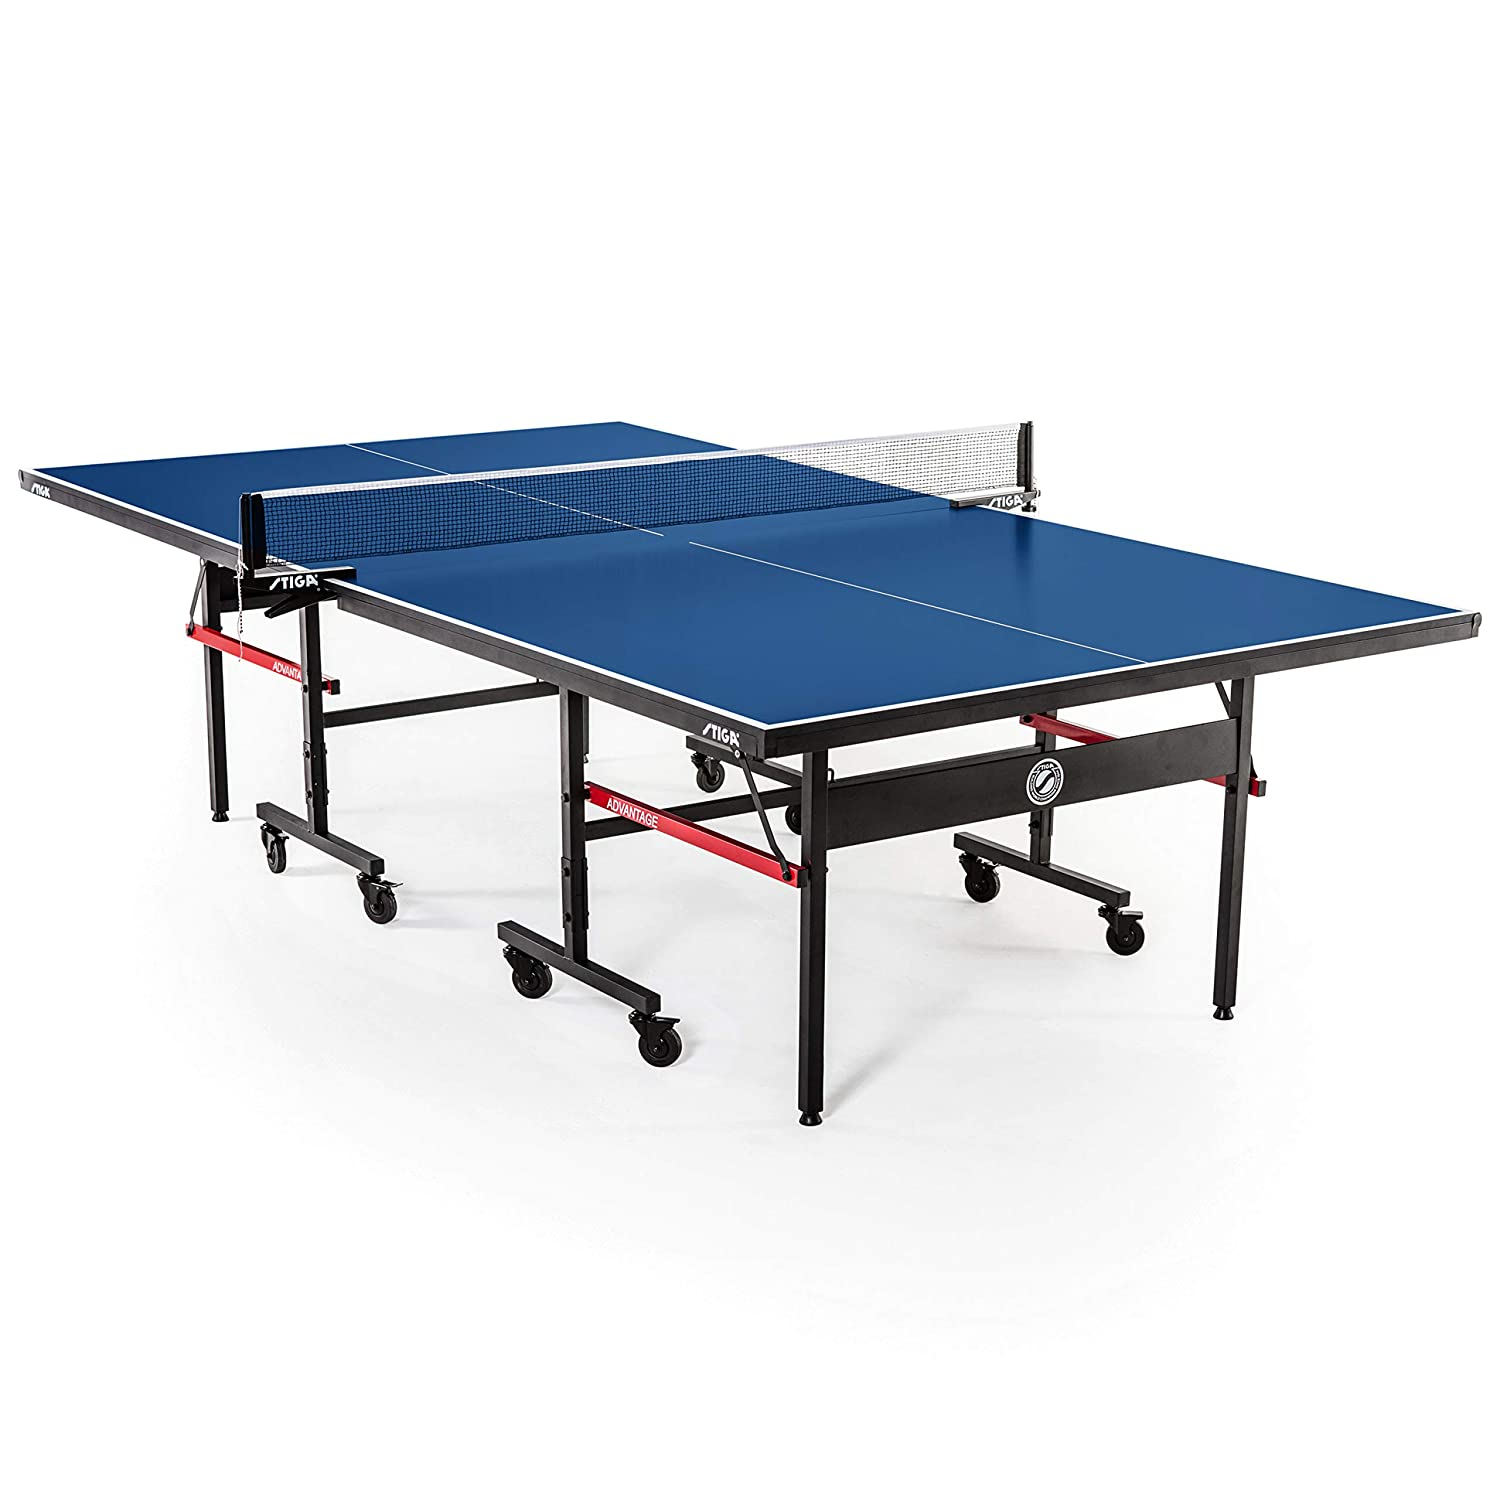 STIGA Advantage – Best Garage Ping-pong Table